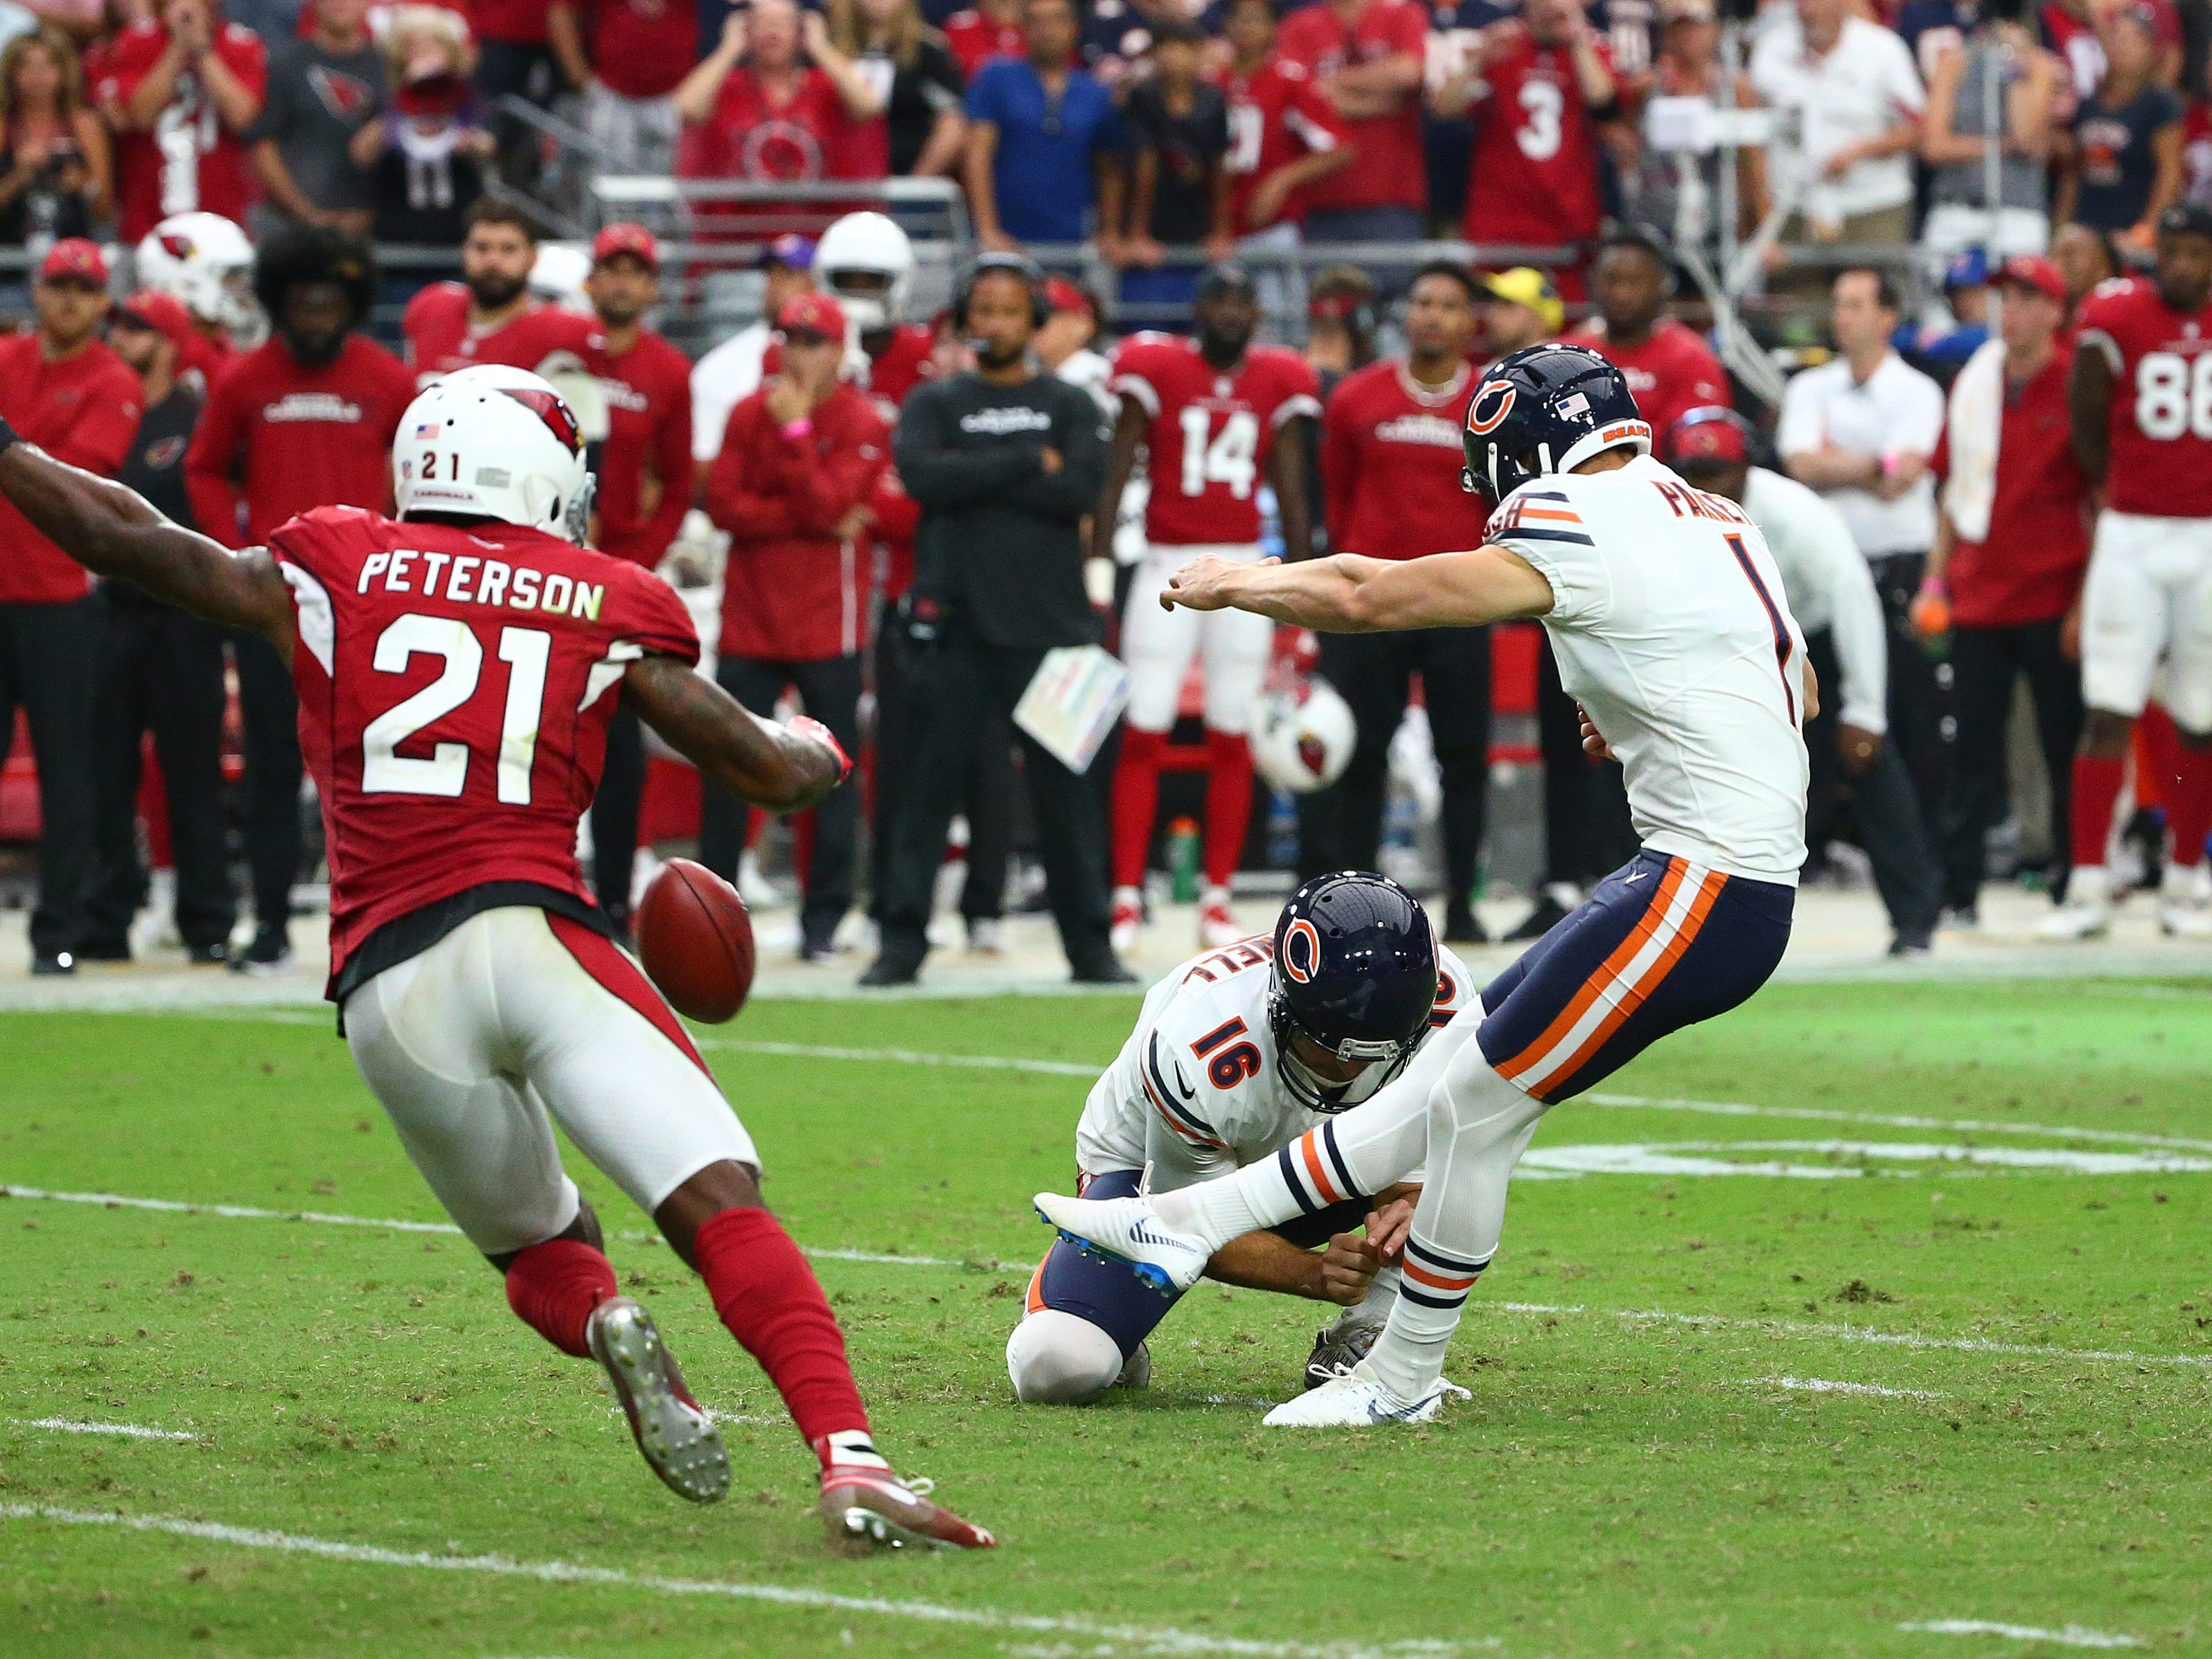 Chicago Bears Cody Parkey kicks the winning field goal against the Arizona Cardinals in the second half at State Farm Stadium in Glendale, Ariz.